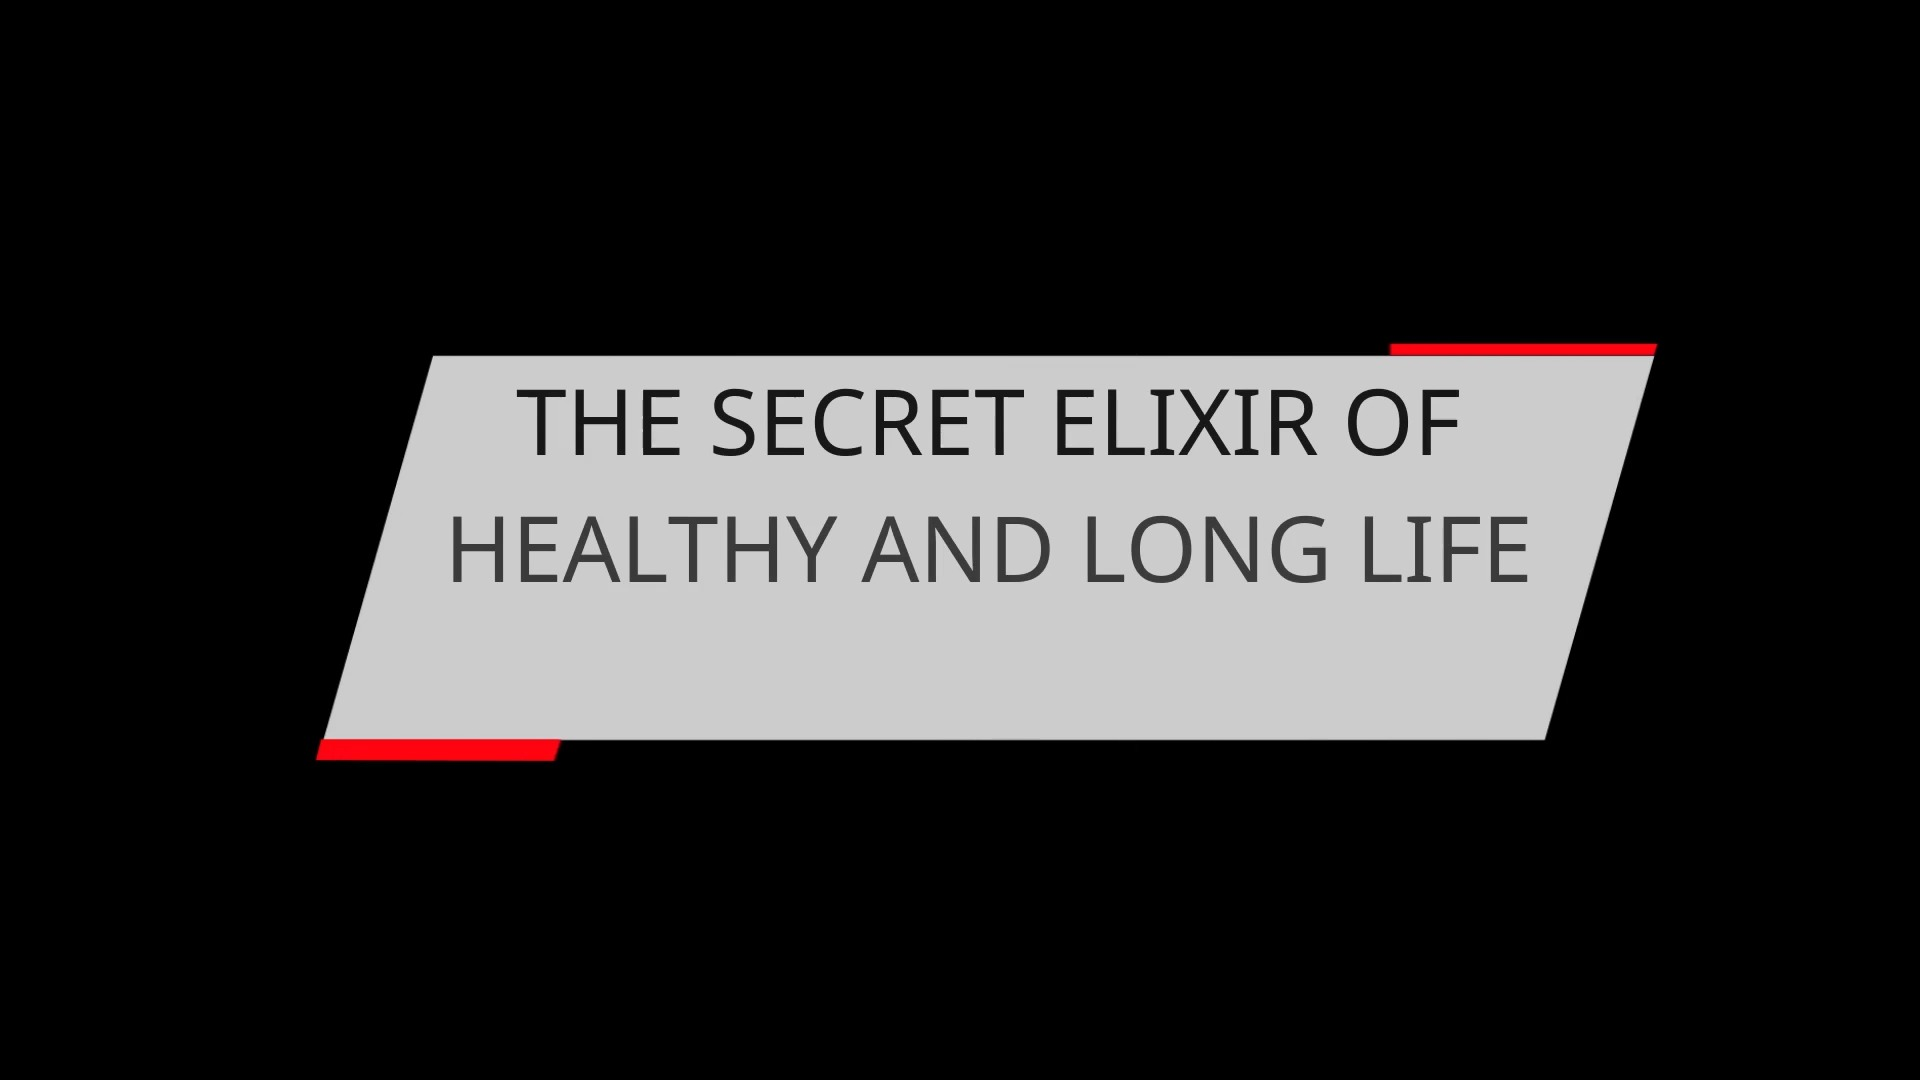 THE SECRET ELIXIR OF HEALTHY AND LONG LIFE